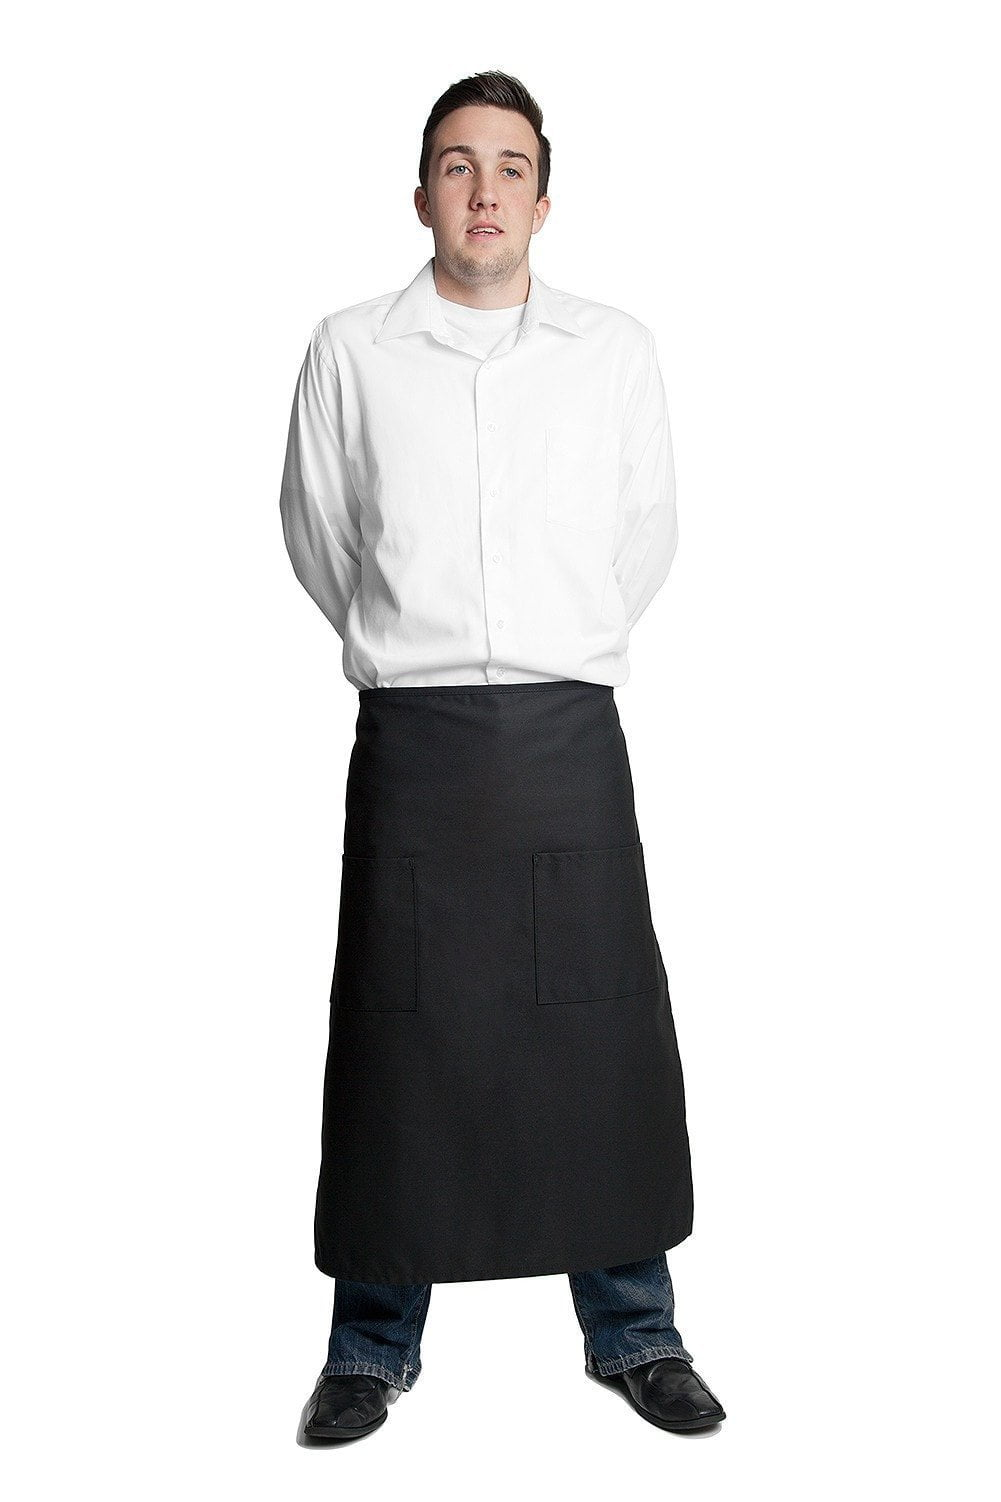 "Full Bistro Apron w/2 Patch Pockets 32""L x 28""W Black Front"